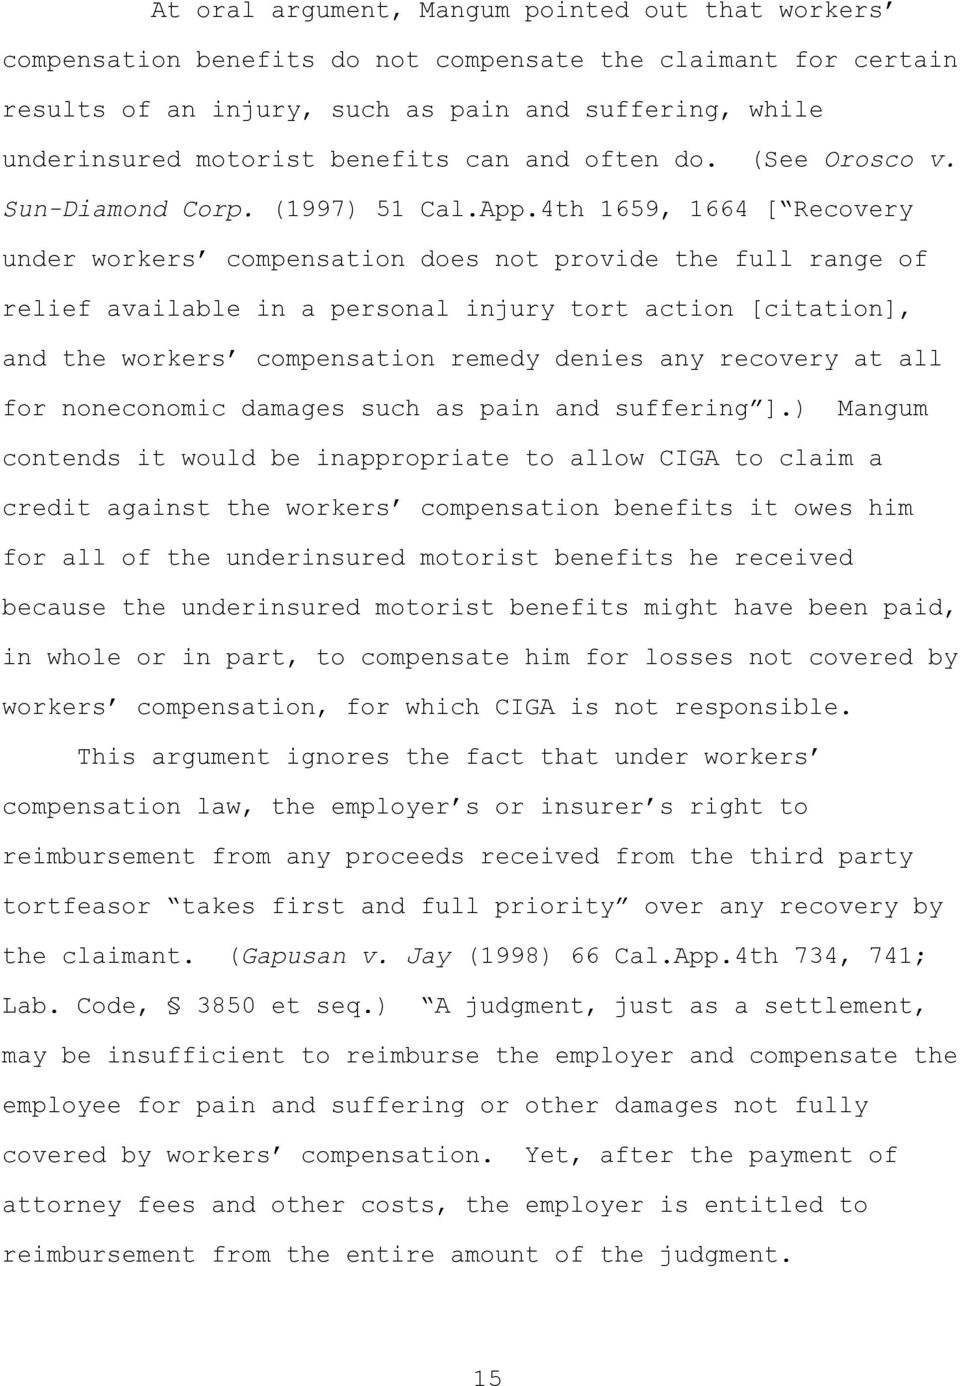 4th 1659, 1664 [ Recovery under workers compensation does not provide the full range of relief available in a personal injury tort action [citation], and the workers compensation remedy denies any